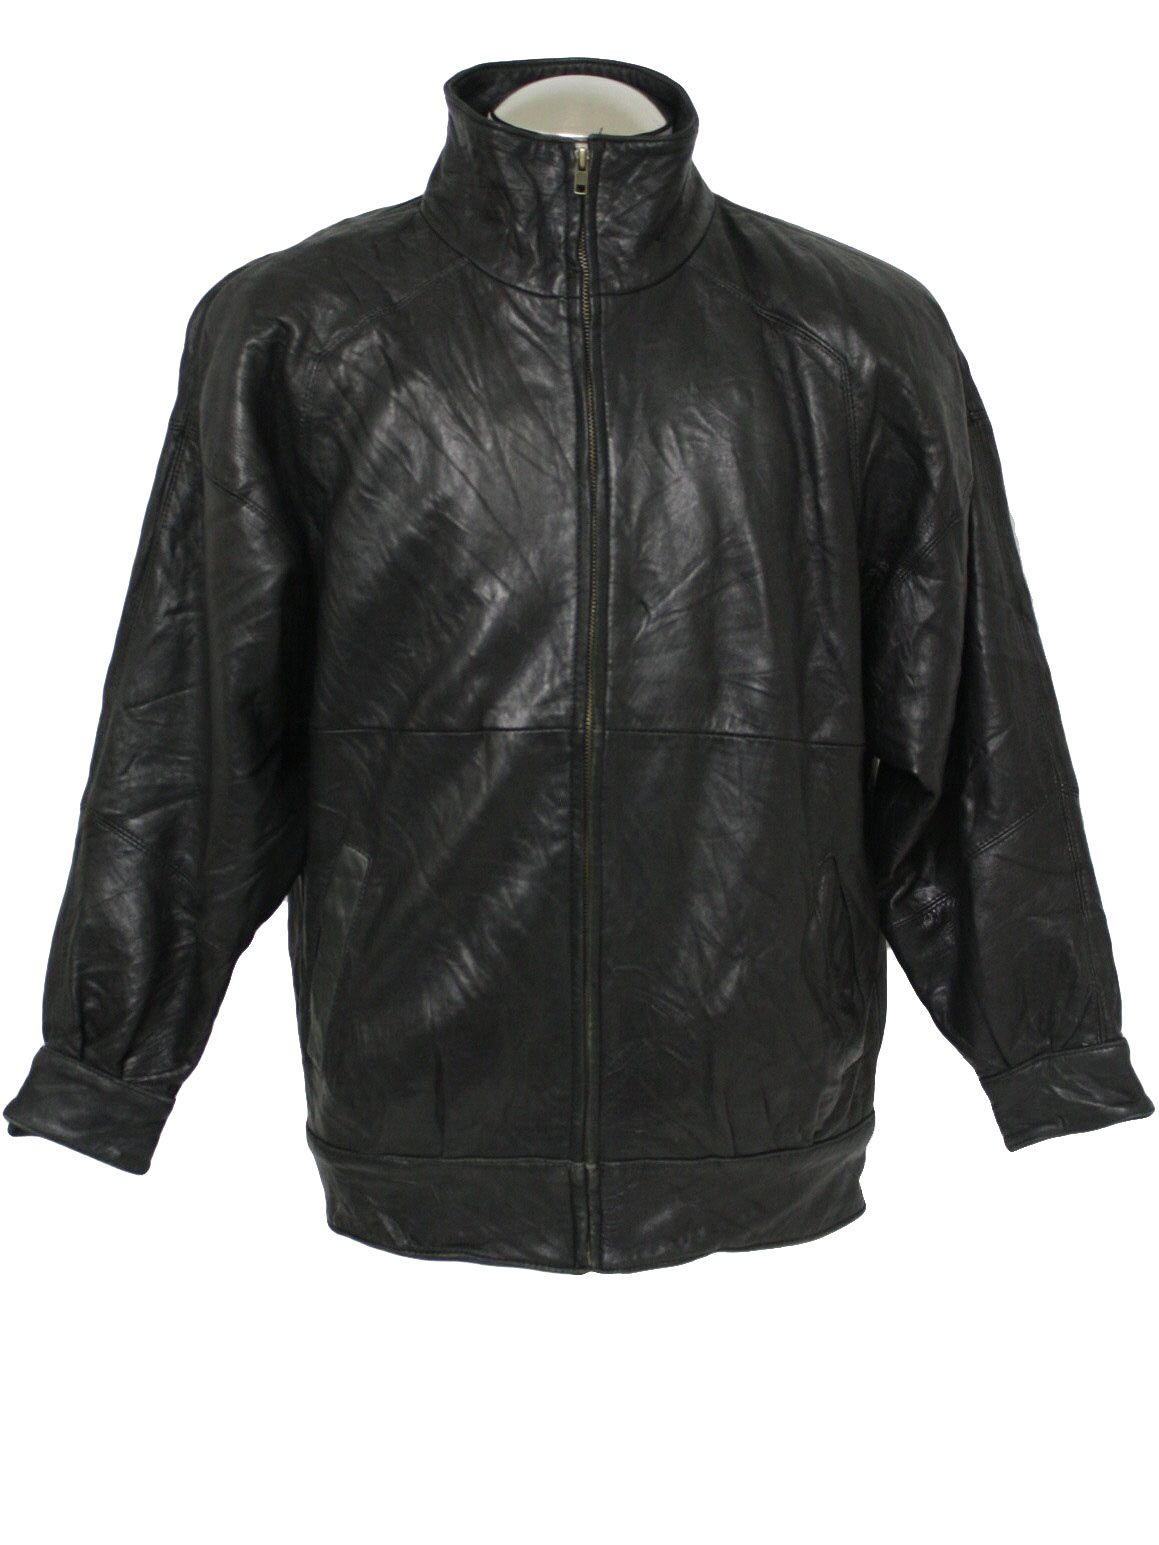 Eighties Nordstrom Leather Jacket: 80s -Nordstrom- Mens black soft ...